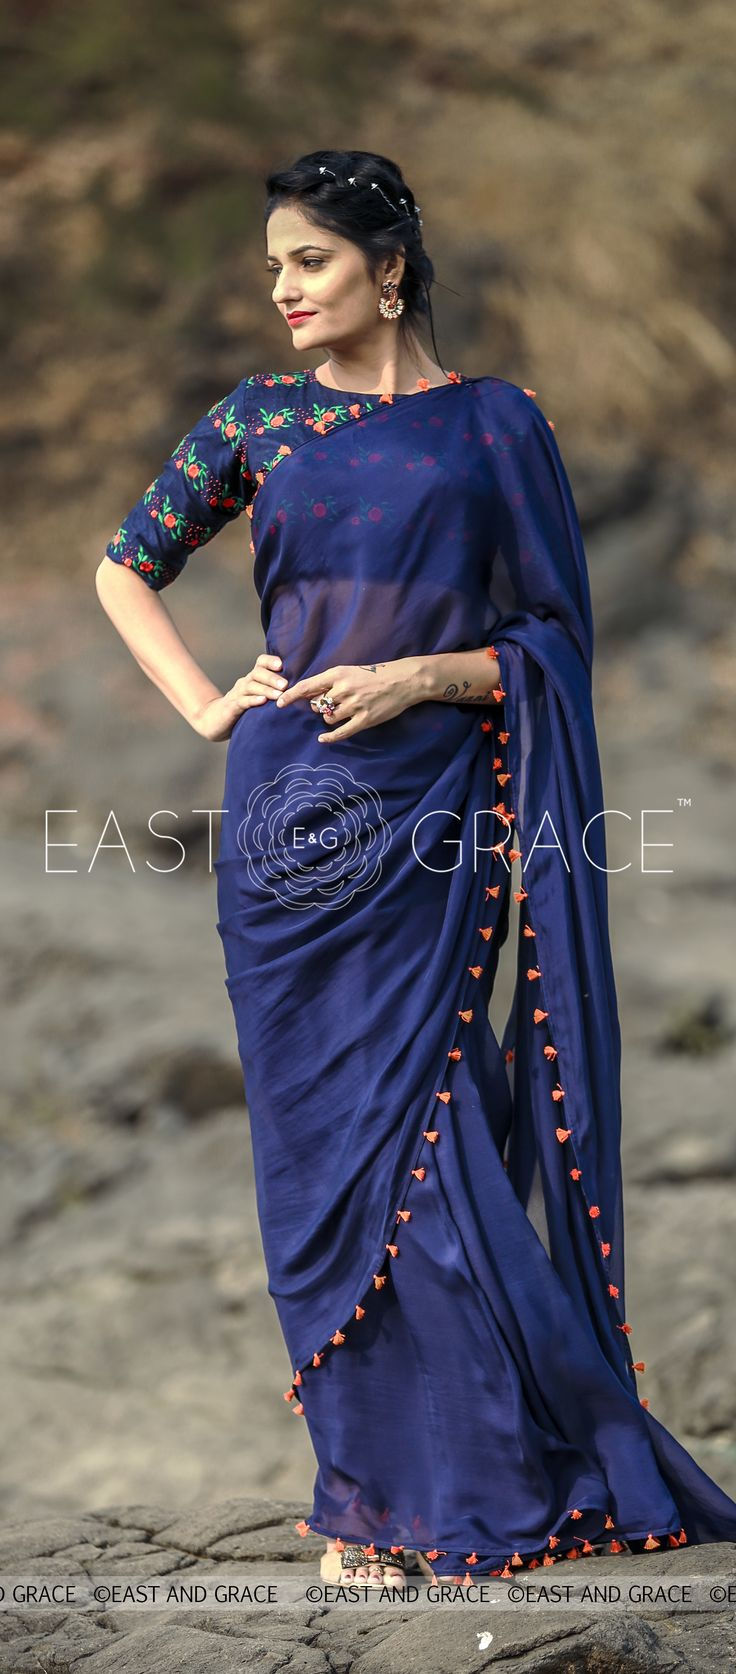 PRICE: INR 6,321.00; US$ 95.77 To buy click here: https://goo.gl/FdPrde Featuring the Blue Flame saree in deep navy blue, 100% flat, pure silk chiffon fabric with neon orange tassels decorated along the edges. The synthetic raw silk blouse has neat, fresh orange flowerbeds embroidered with green foliage that stand out against the stark navy blue backdrop for beautiful results, as though emulating the bright sparks from a blue flame. Reach us at care@eastandgrace.com. With Love, EAST & GRACE…